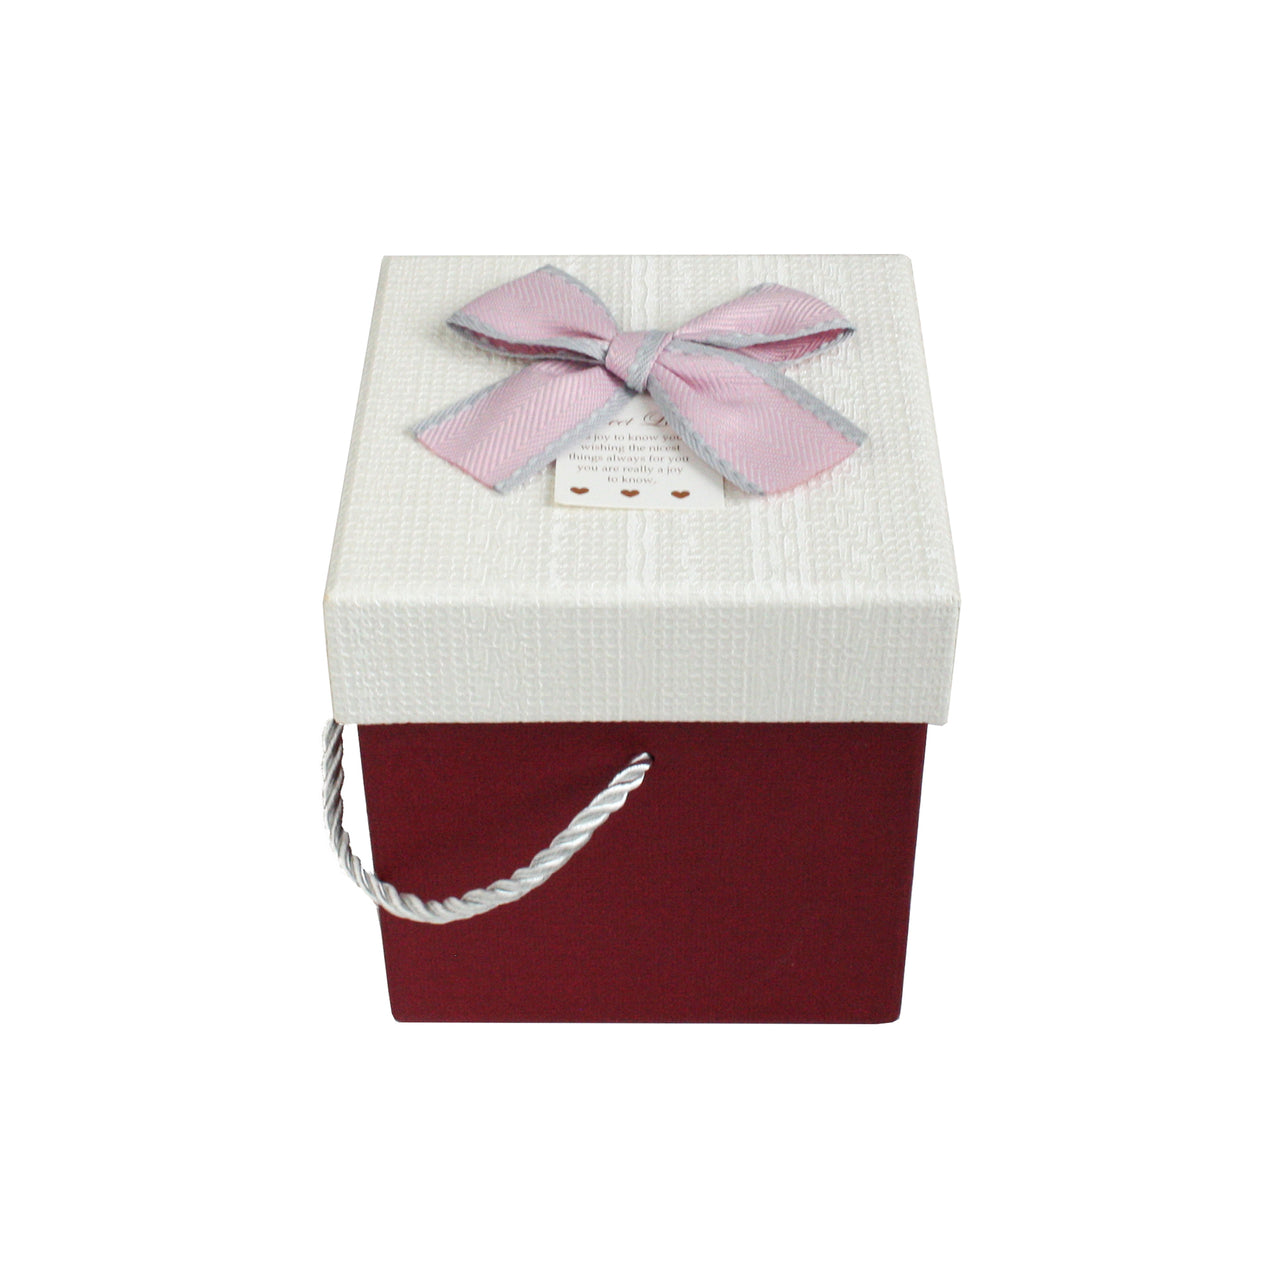 Small Red Gift Box